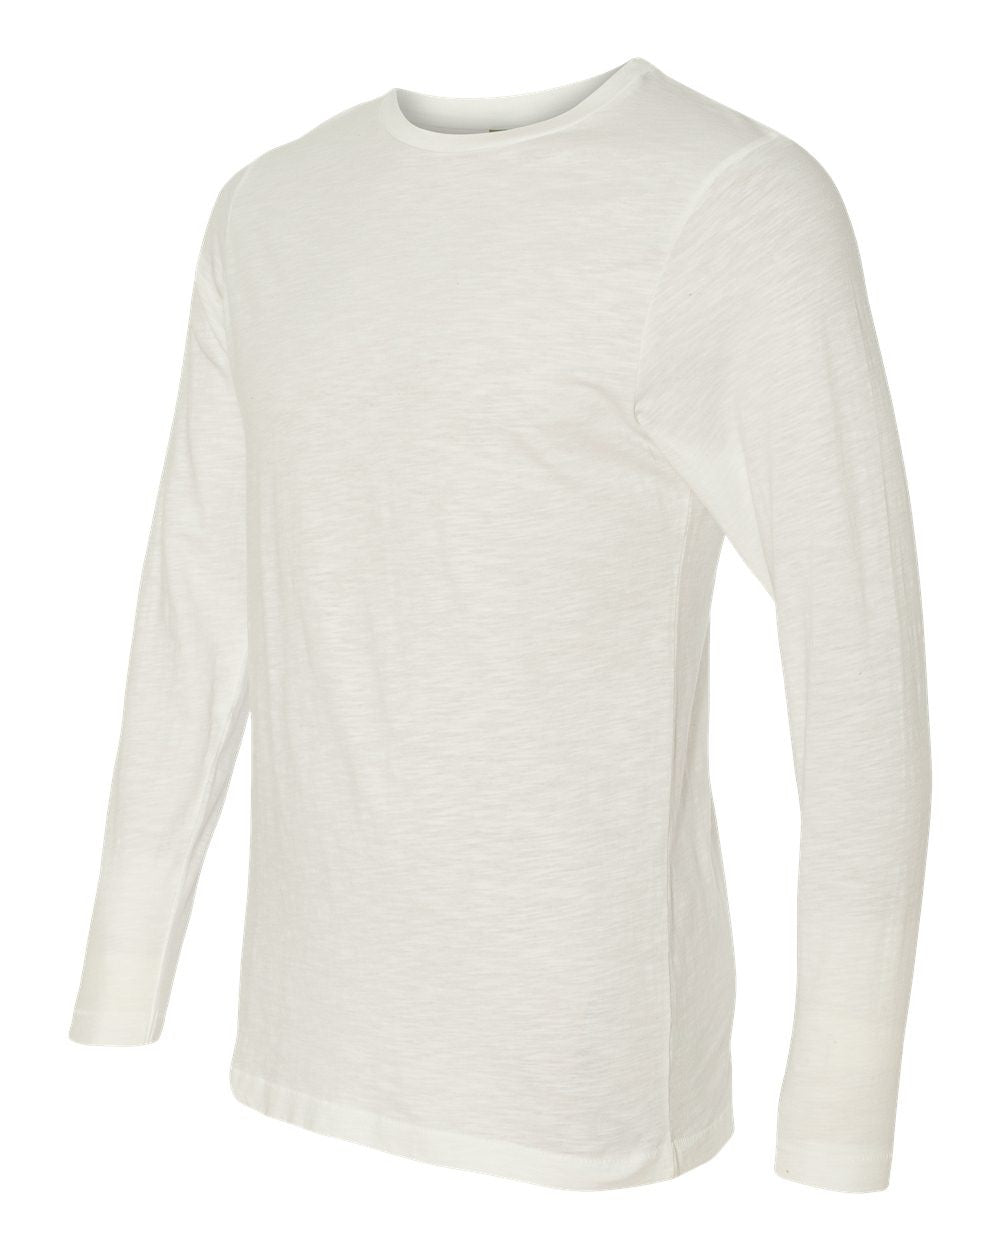 4847-Joey Slub Long Sleeve Crewneck T-Shirt